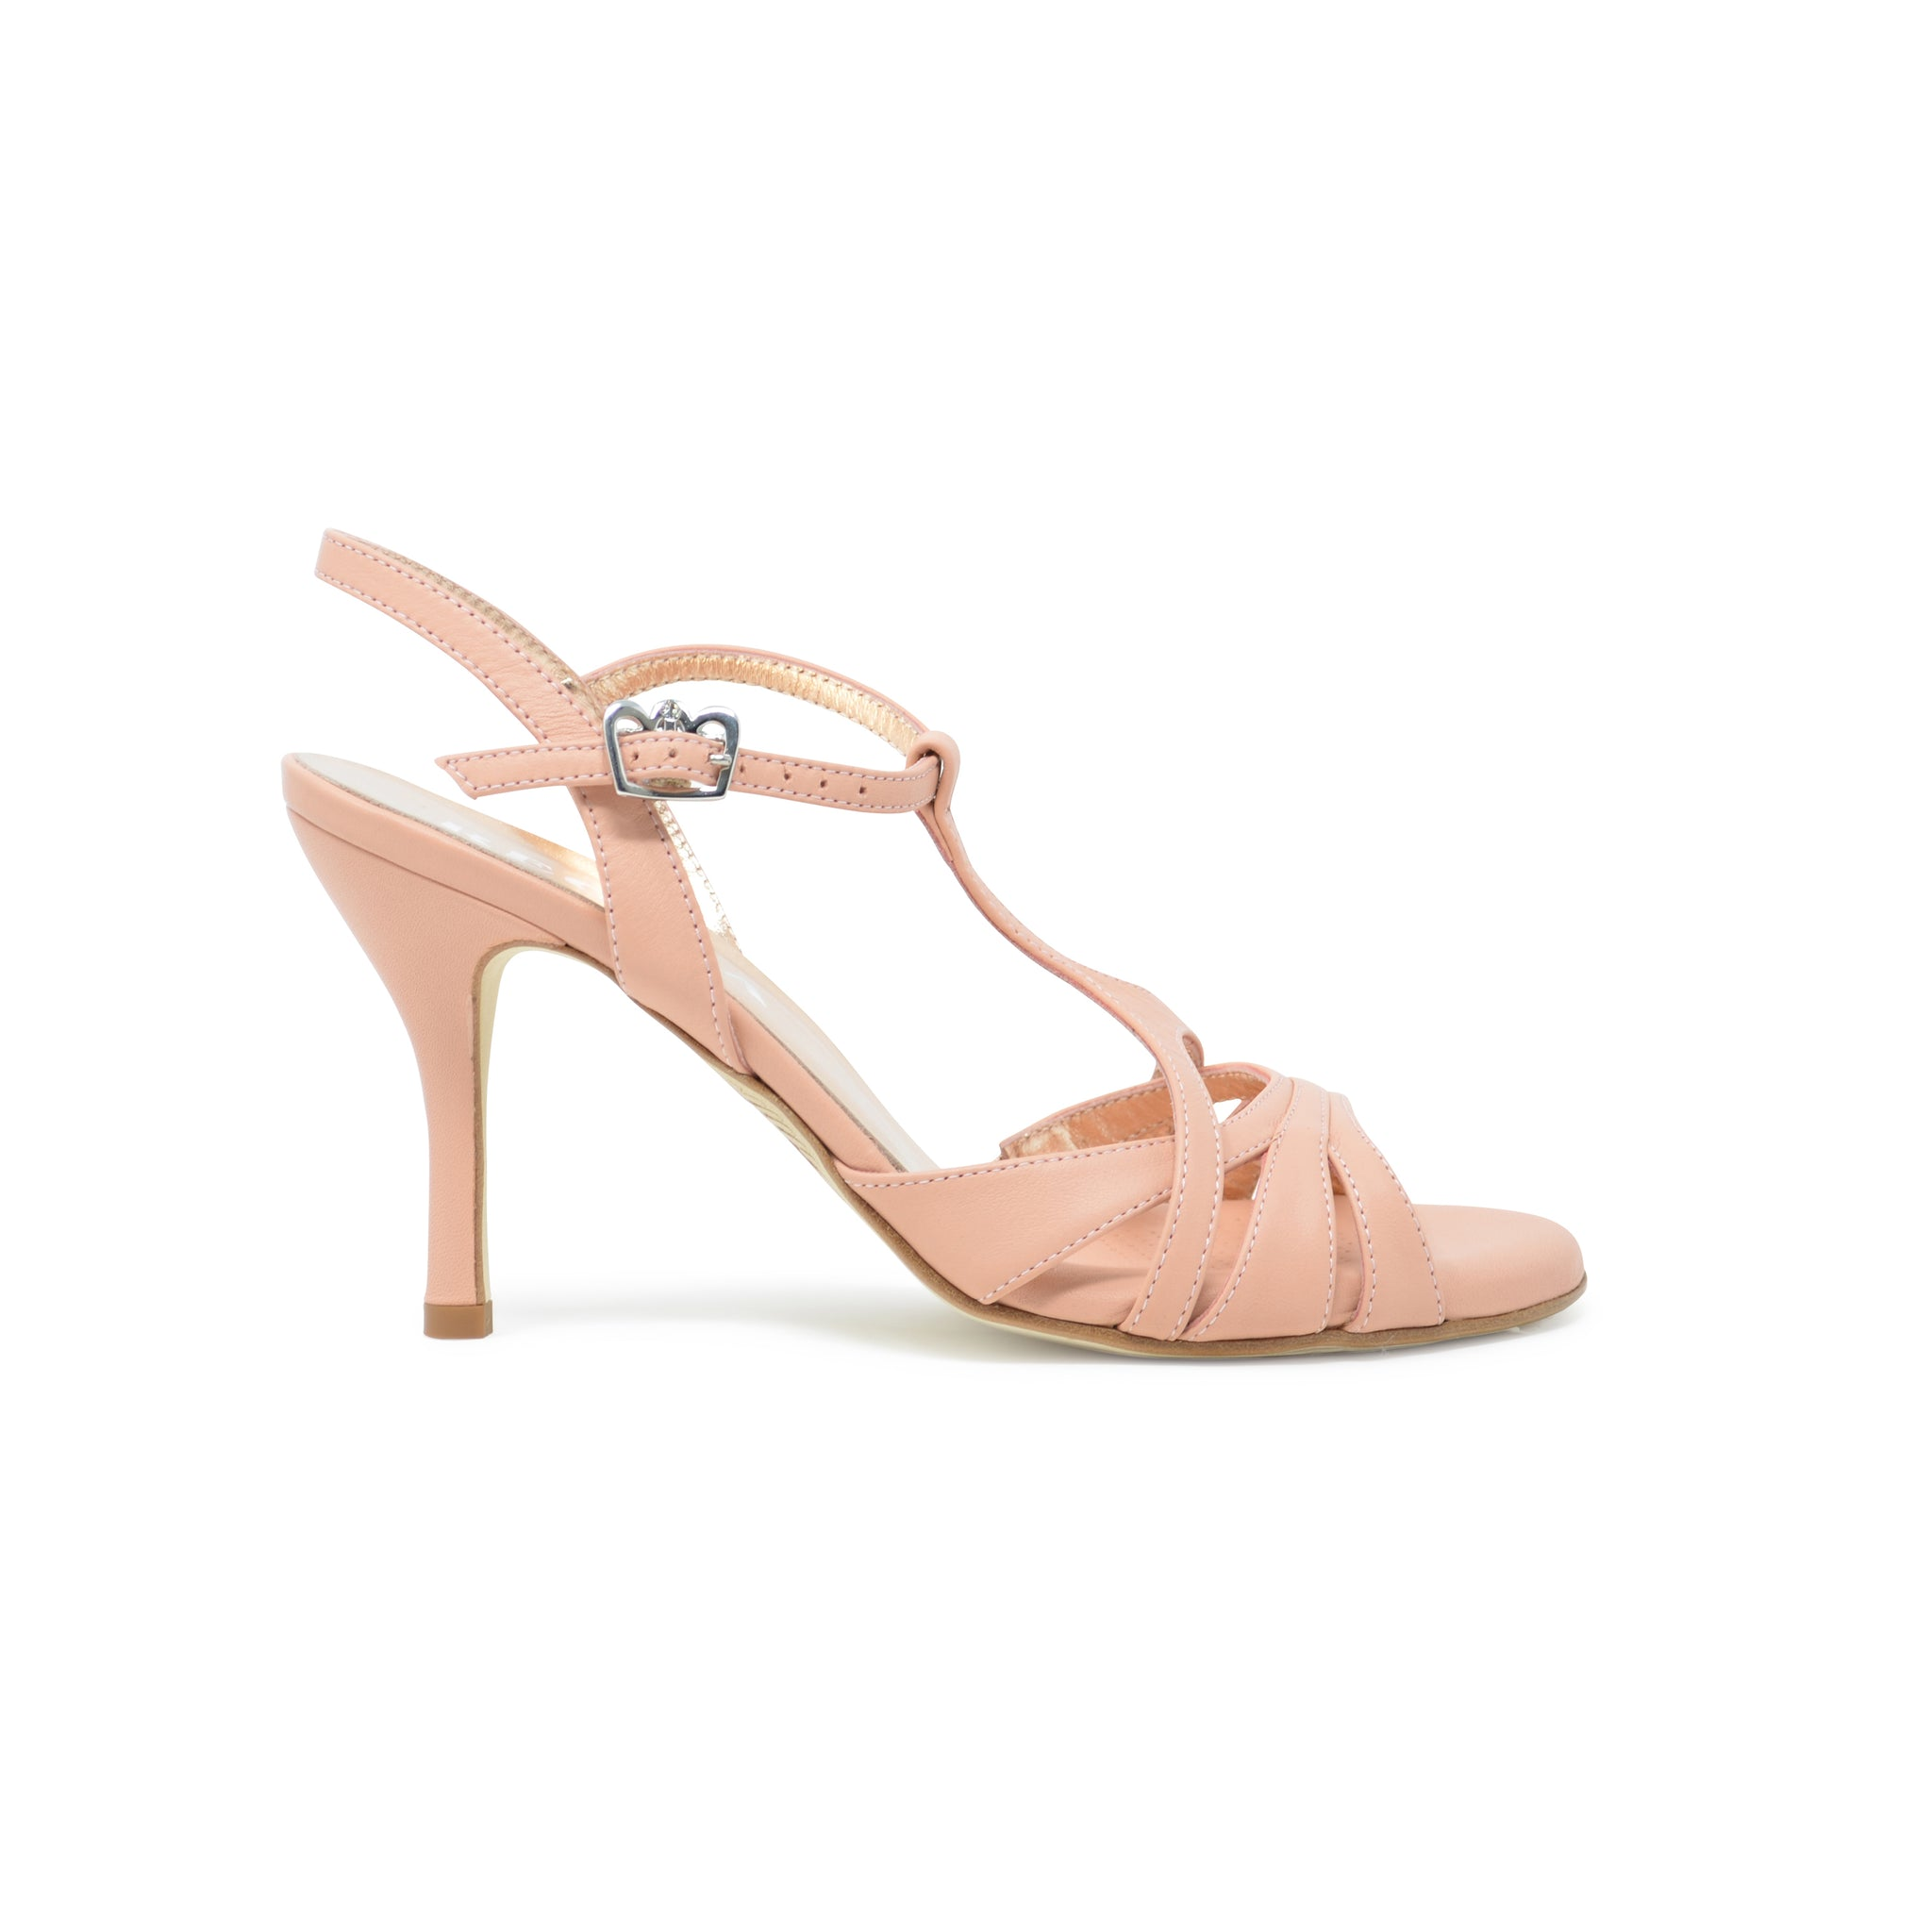 Size 6.5 - Hollywood Slim in Dusty Rose - Regina